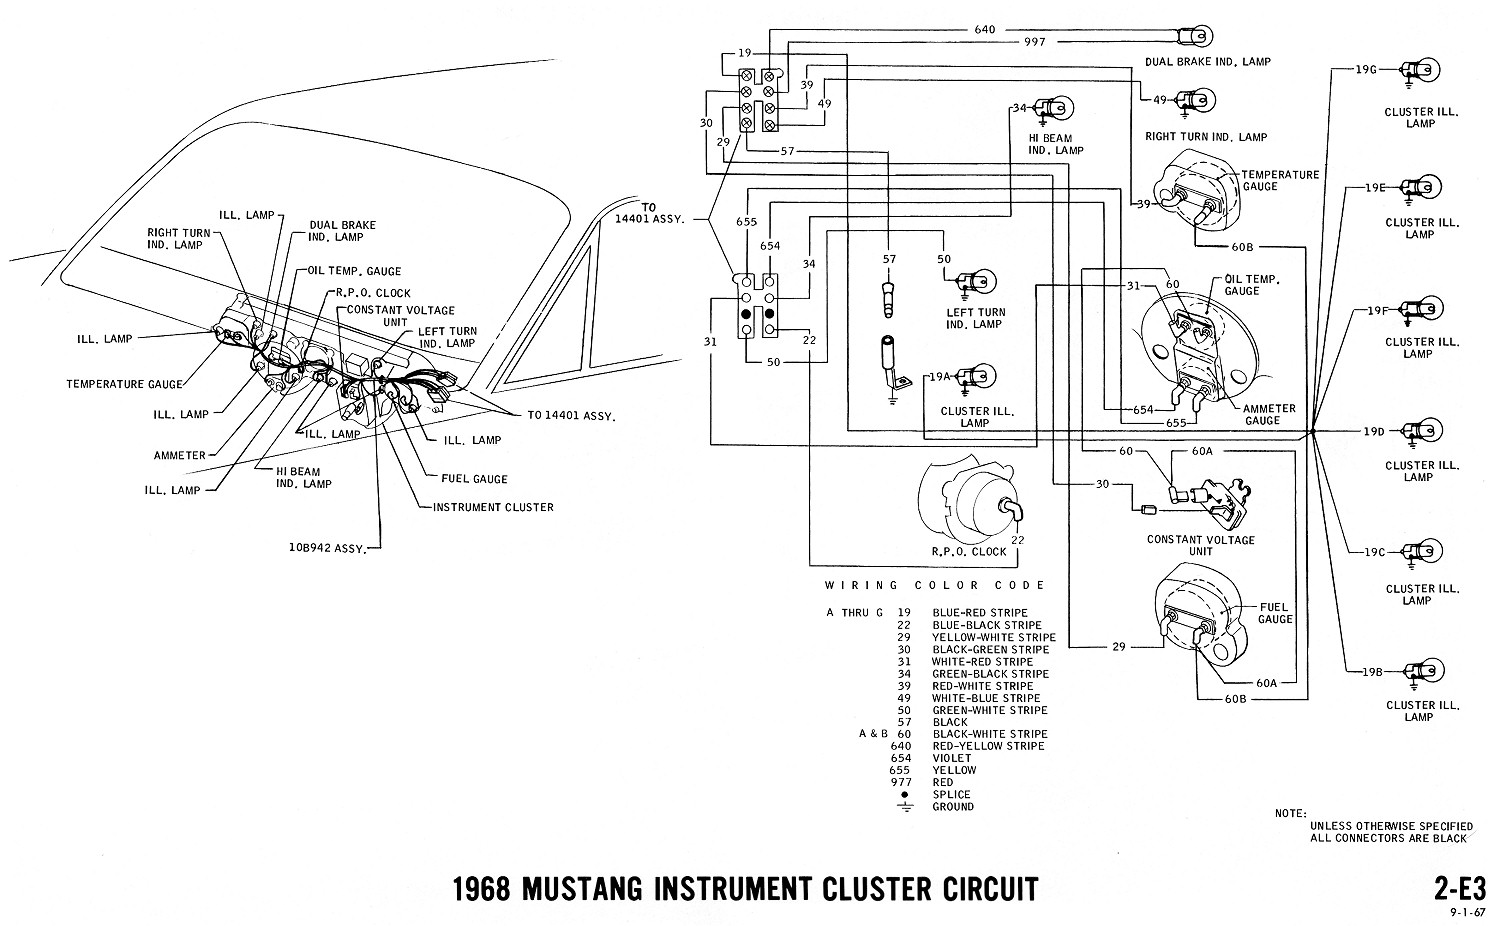 1968 mustang wiring diagram instruments wiring diagram for 1968 ford mustang the wiring diagram 1968 ford mustang wiring diagram at bayanpartner.co